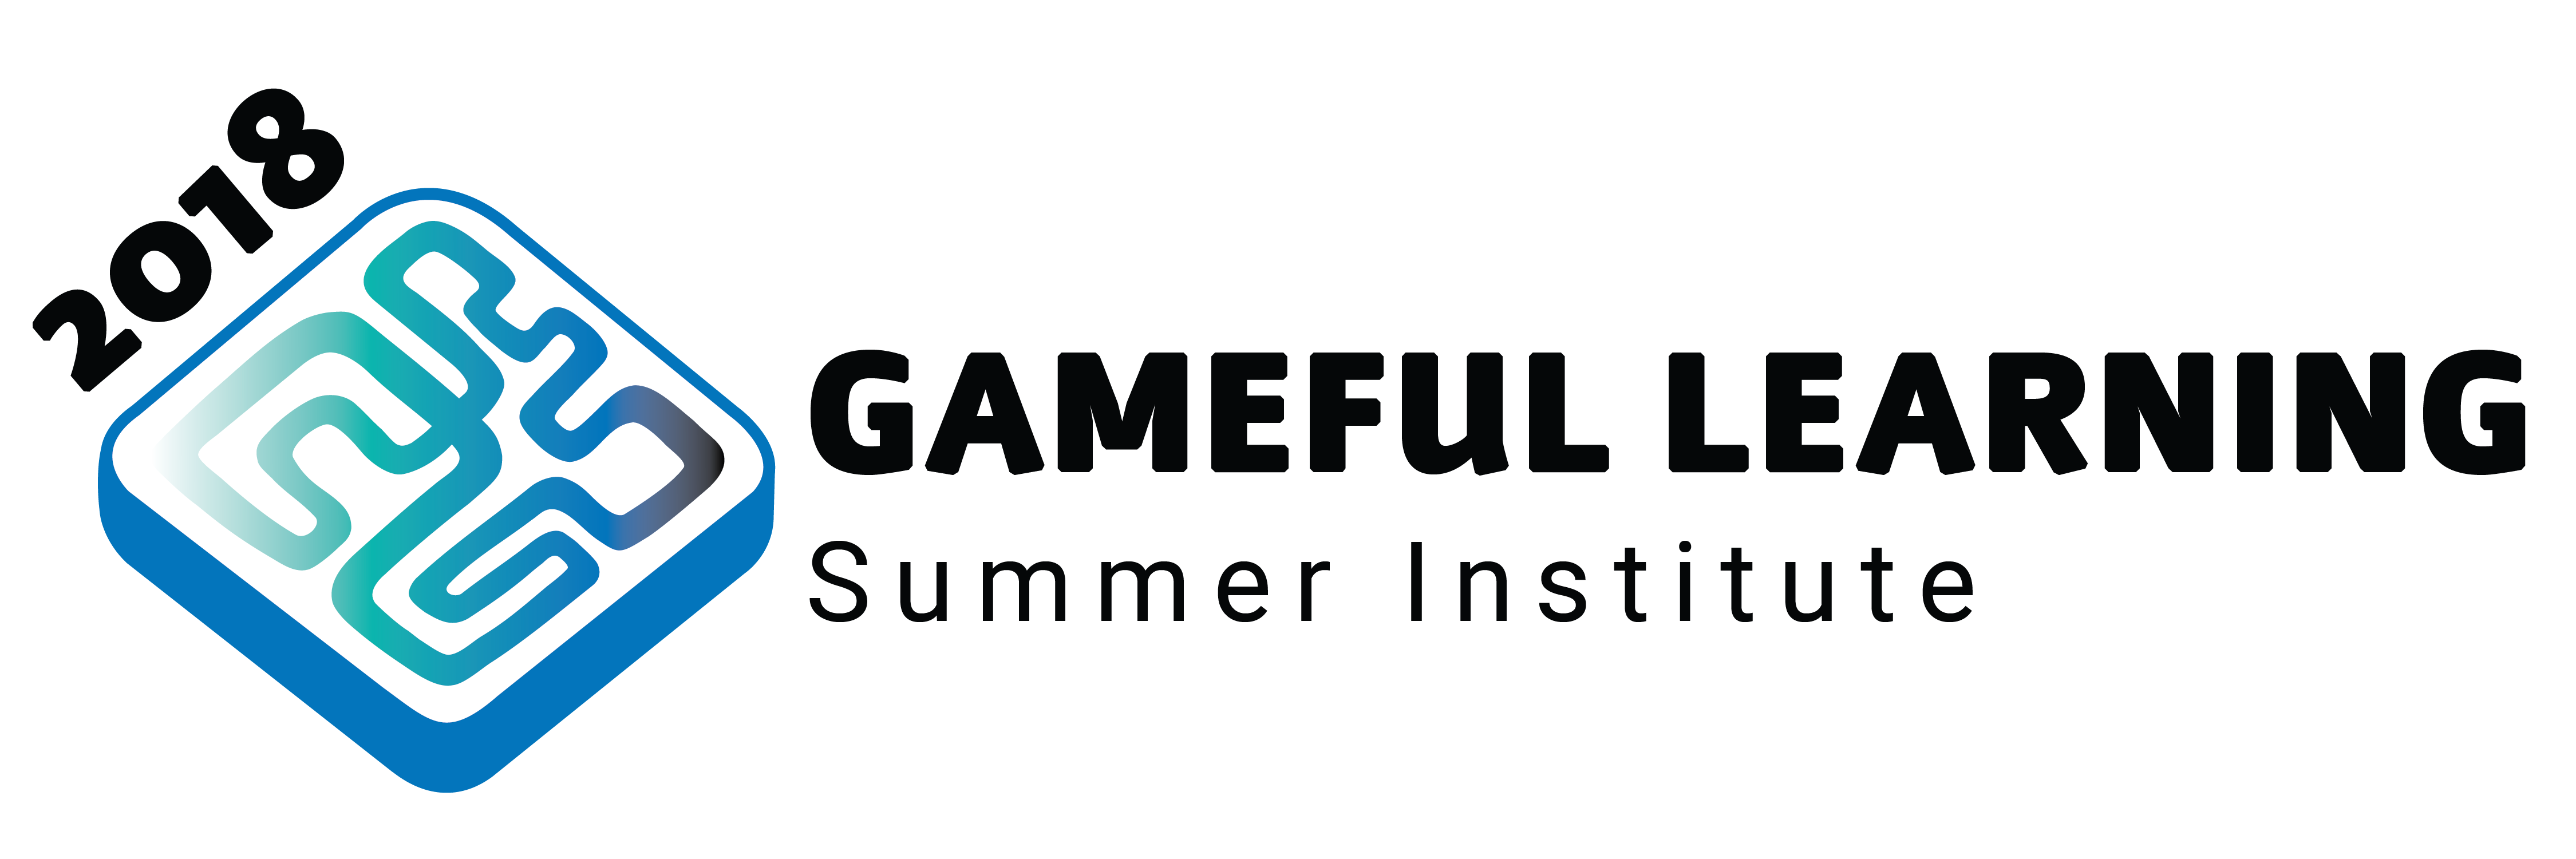 Colorful maze image with gameful learning summer institute typeface